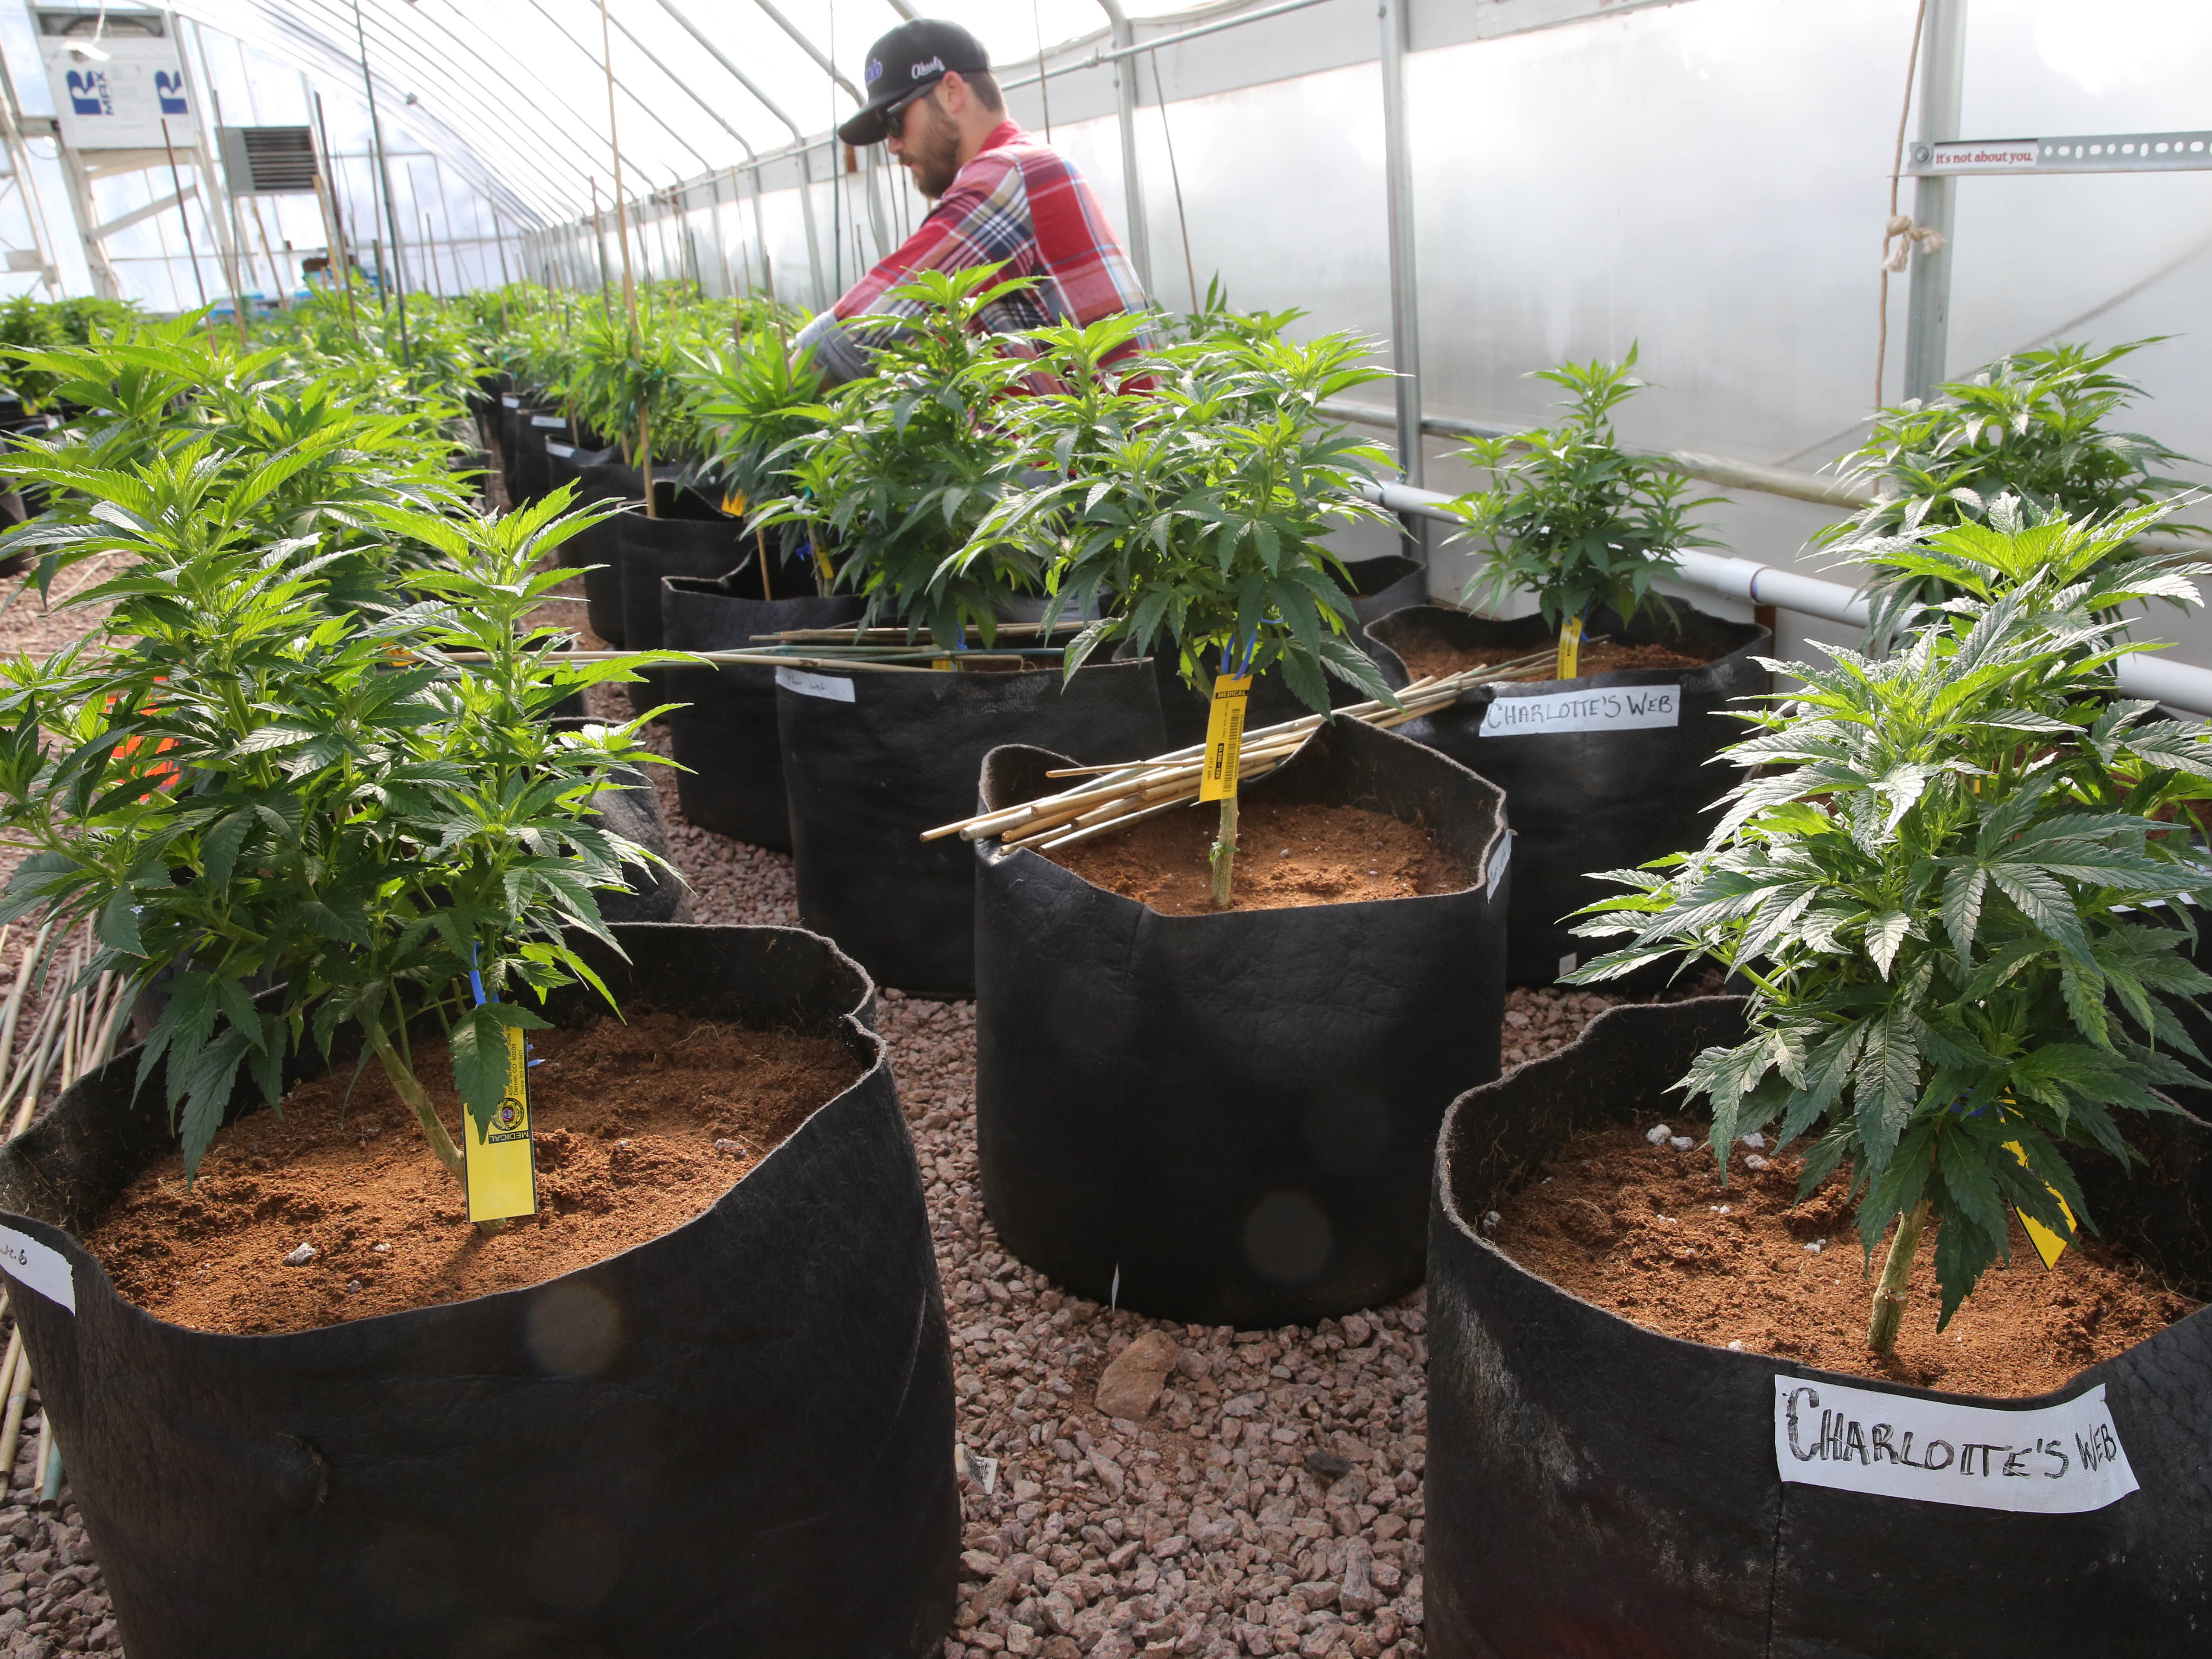 <p>In this Feb. 7, 2014 file photo, a worker cultivates a special strain of medical marijuana known as Charlotte's Web inside a greenhouse, in a remote spot in the mountains west of Colorado Springs, Colorado.</p>